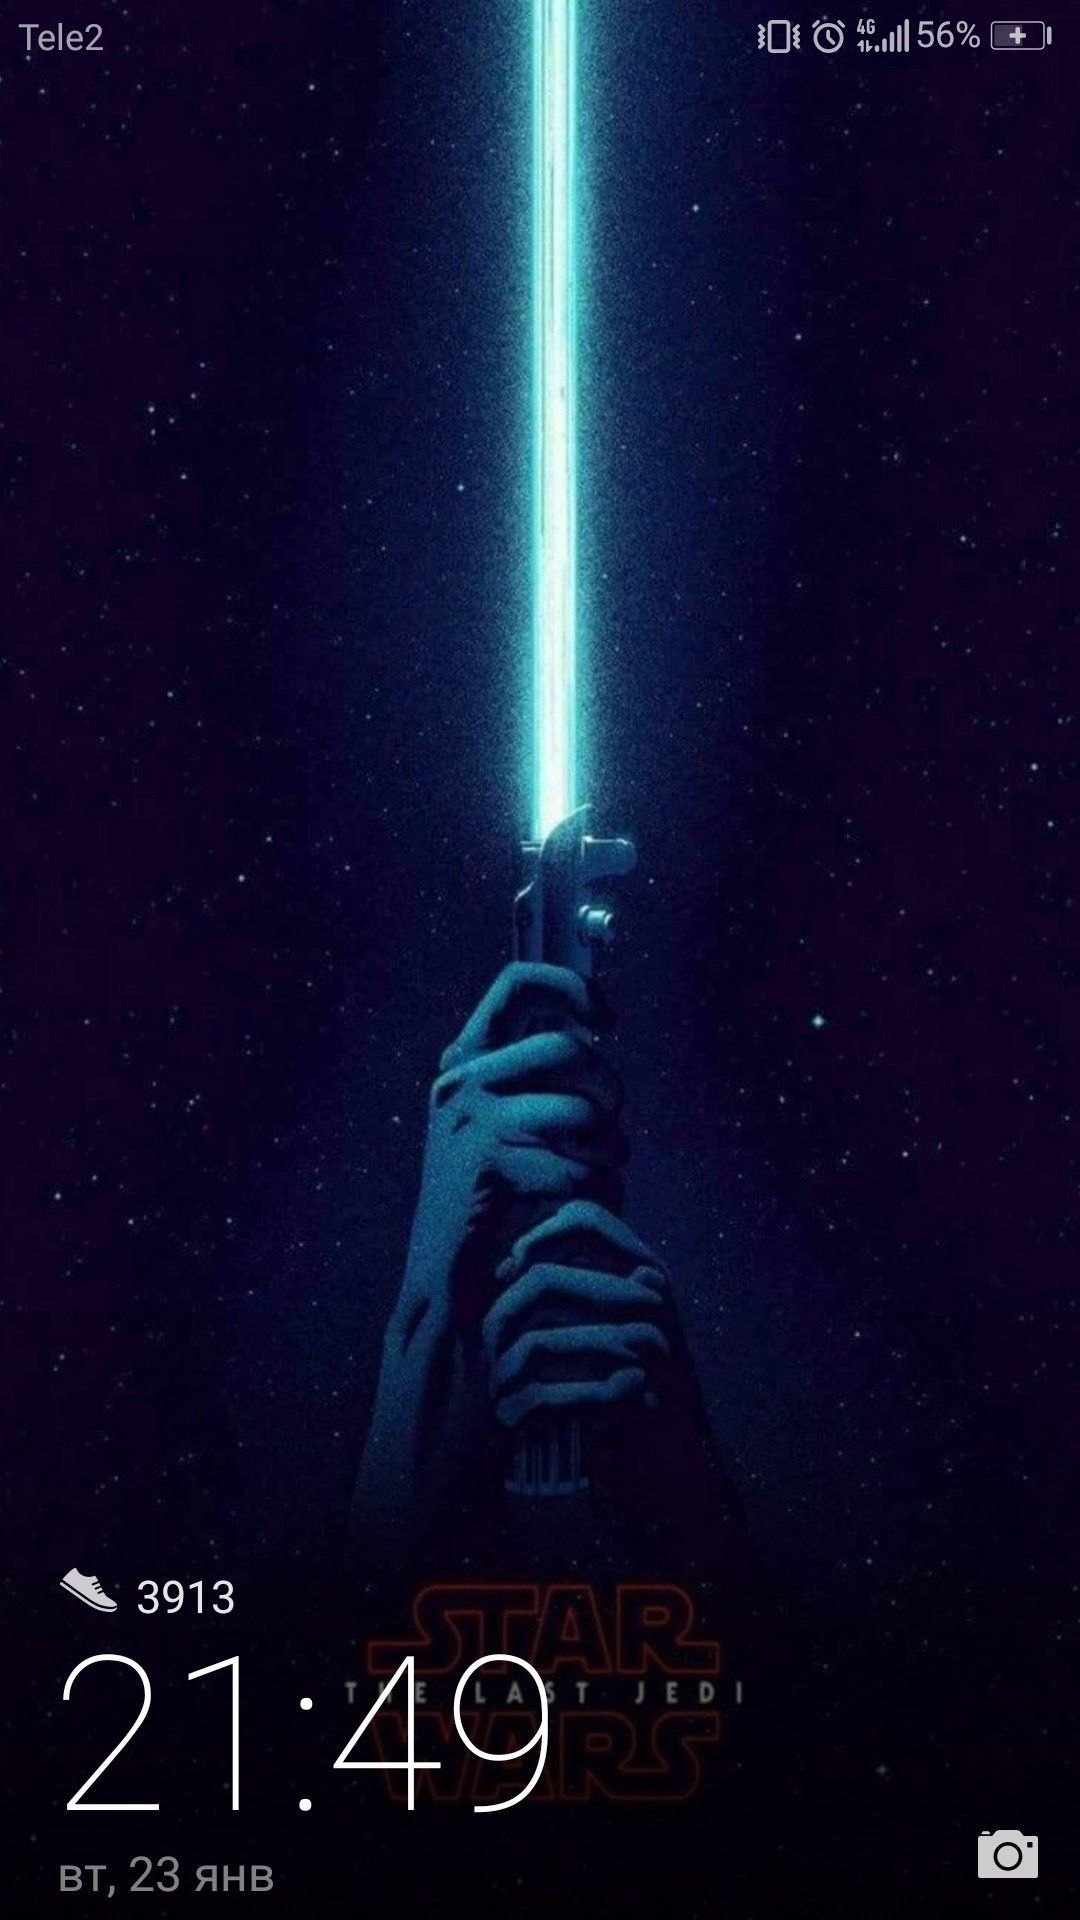 Star Wars Lightsaber Art